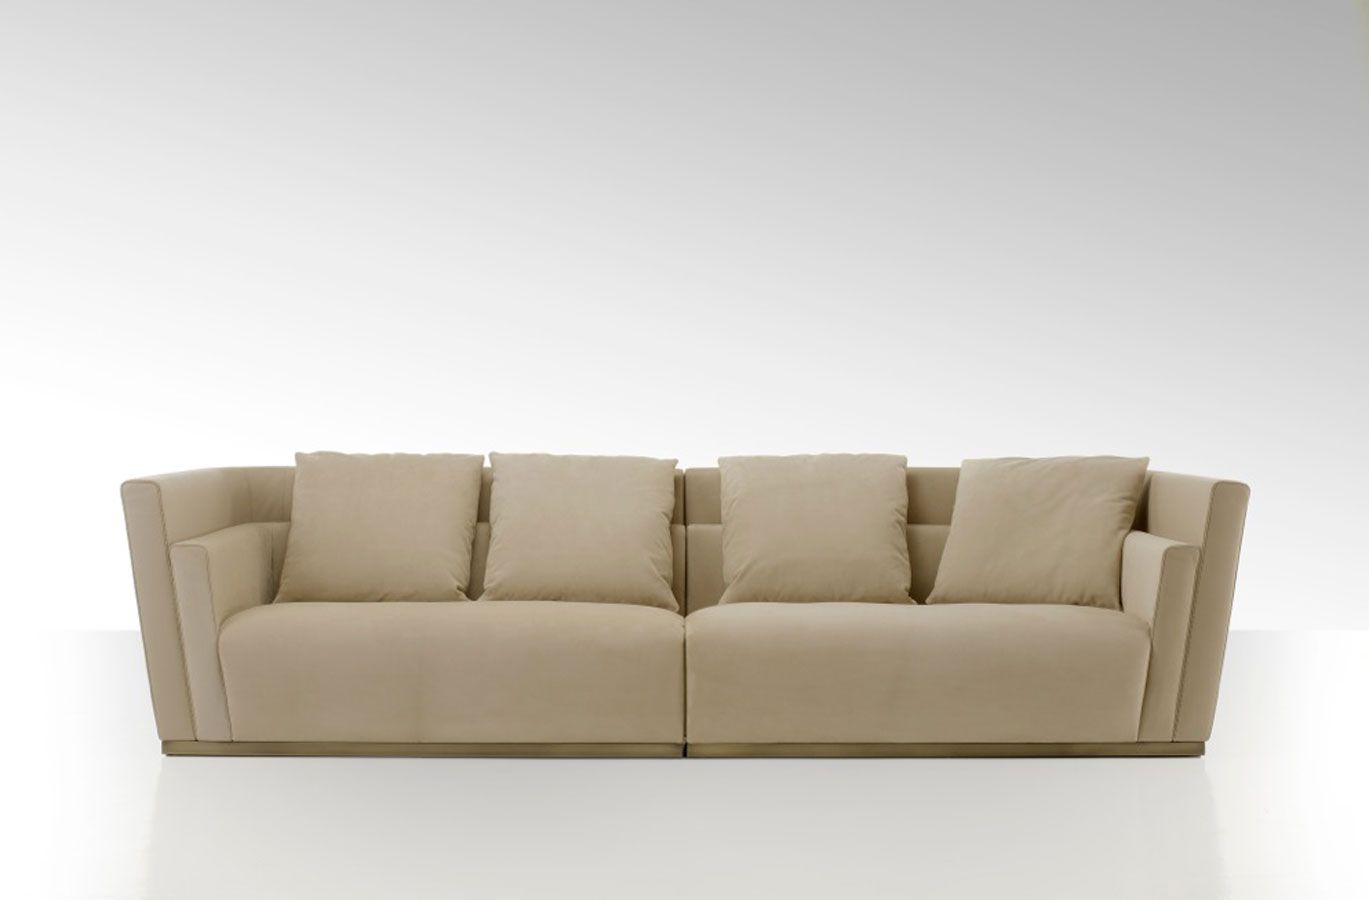 Divani Fendi Divano Borromini Di Fendi Casa Padded Sofa Furniture Modern